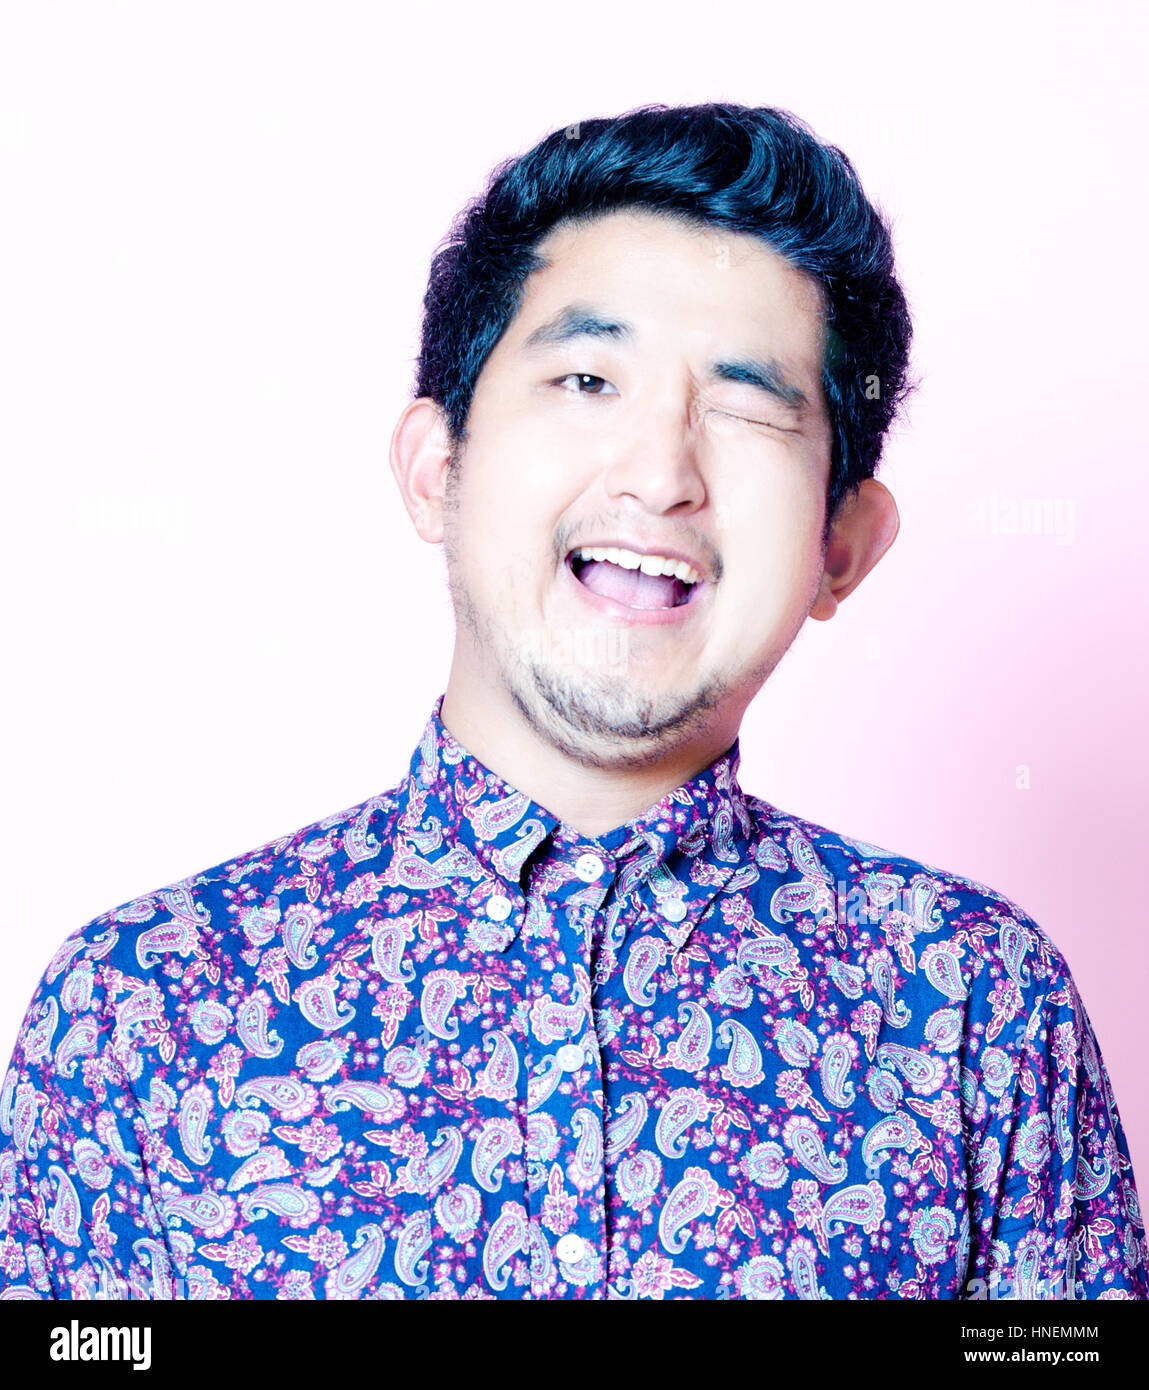 Young Geeky Asian Man in colorful shirt - Stock Image